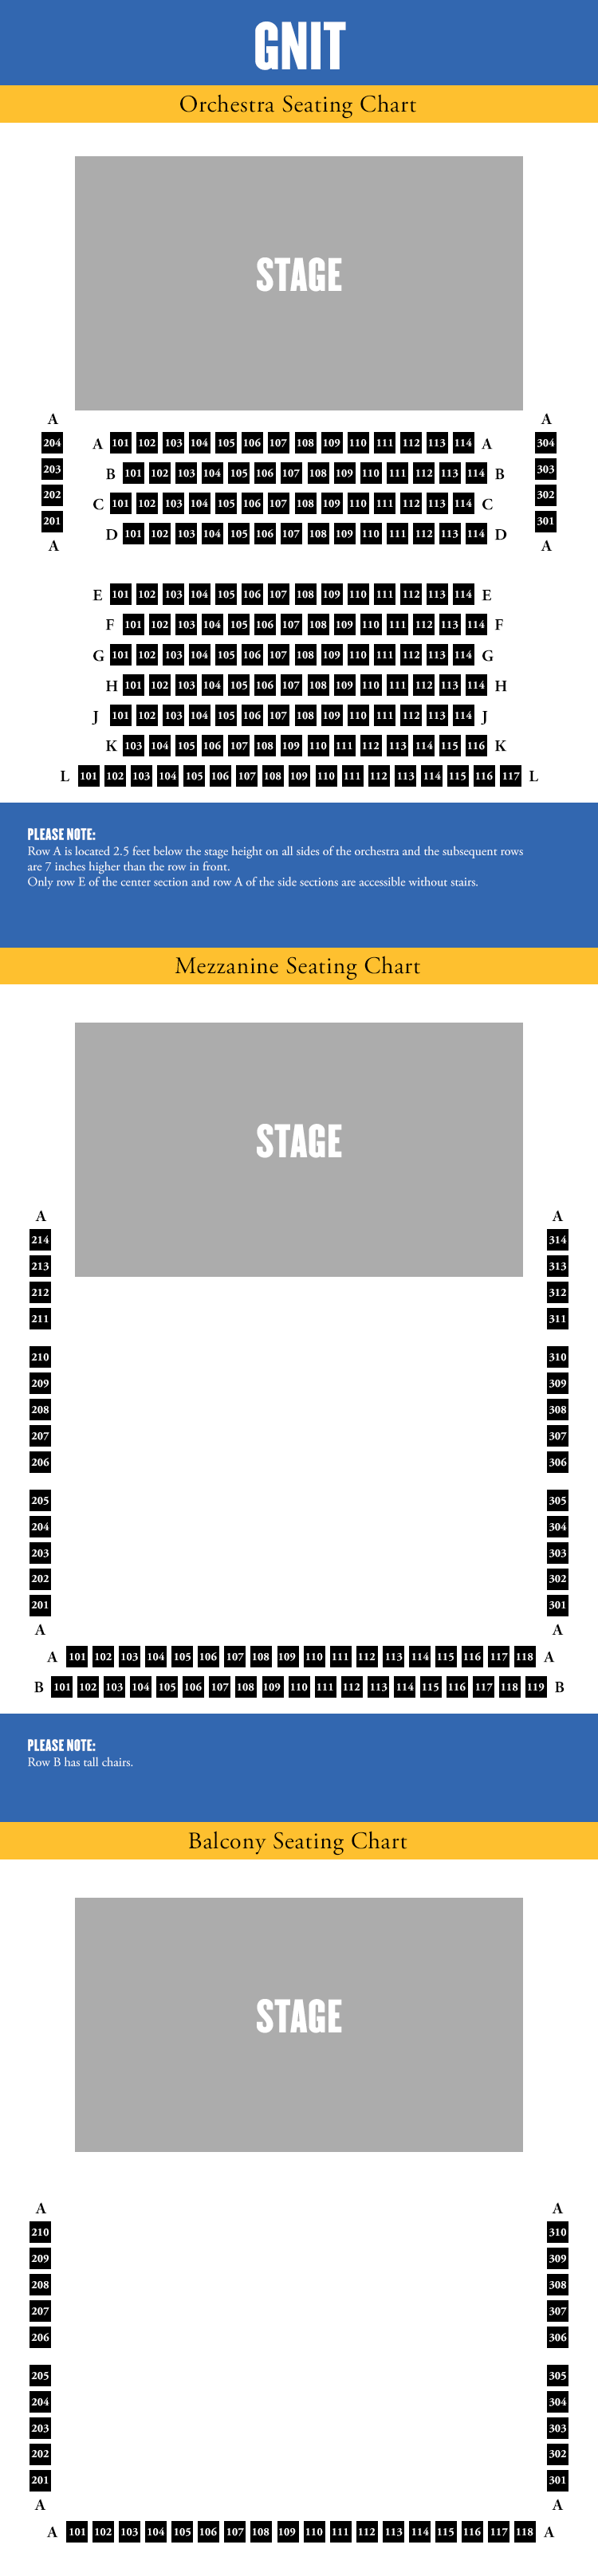 GNIT Seating Chart. Subscriber Booking now open. Tickets on sale plus an interactive/accessible seating chart coming soon.